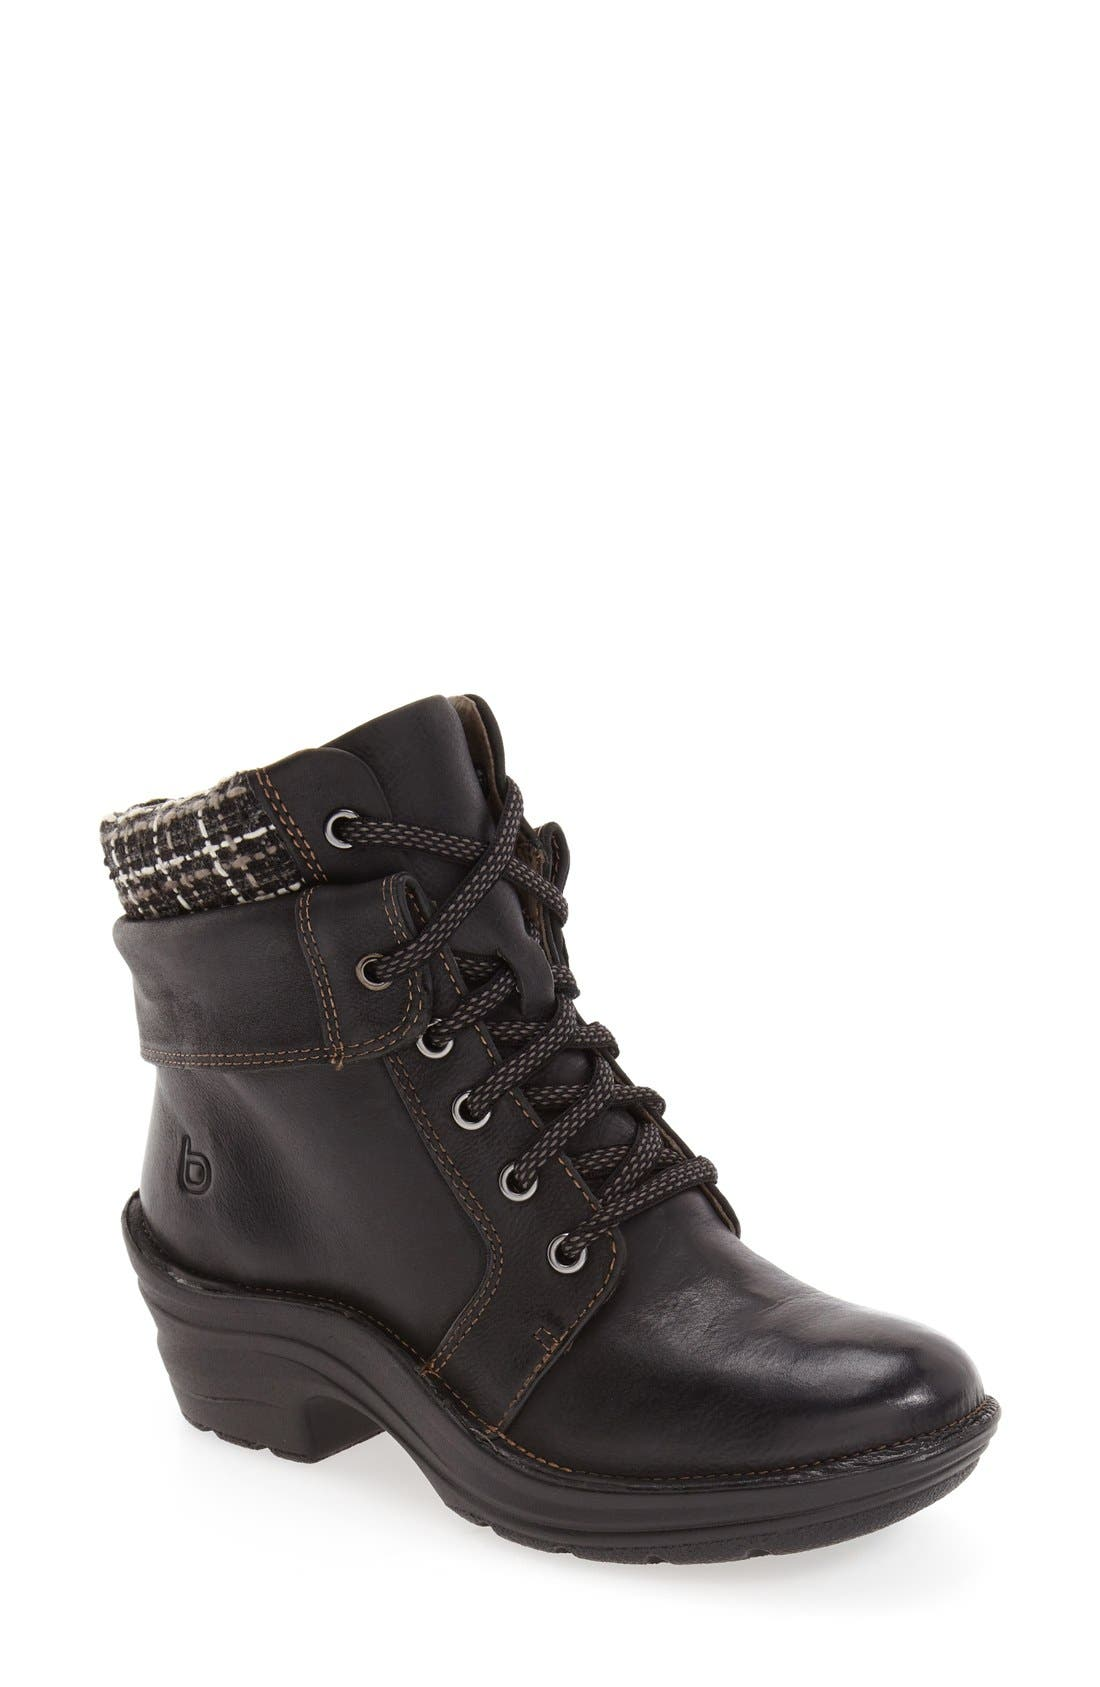 'Romulus' Boot,                             Main thumbnail 1, color,                             Black Leather